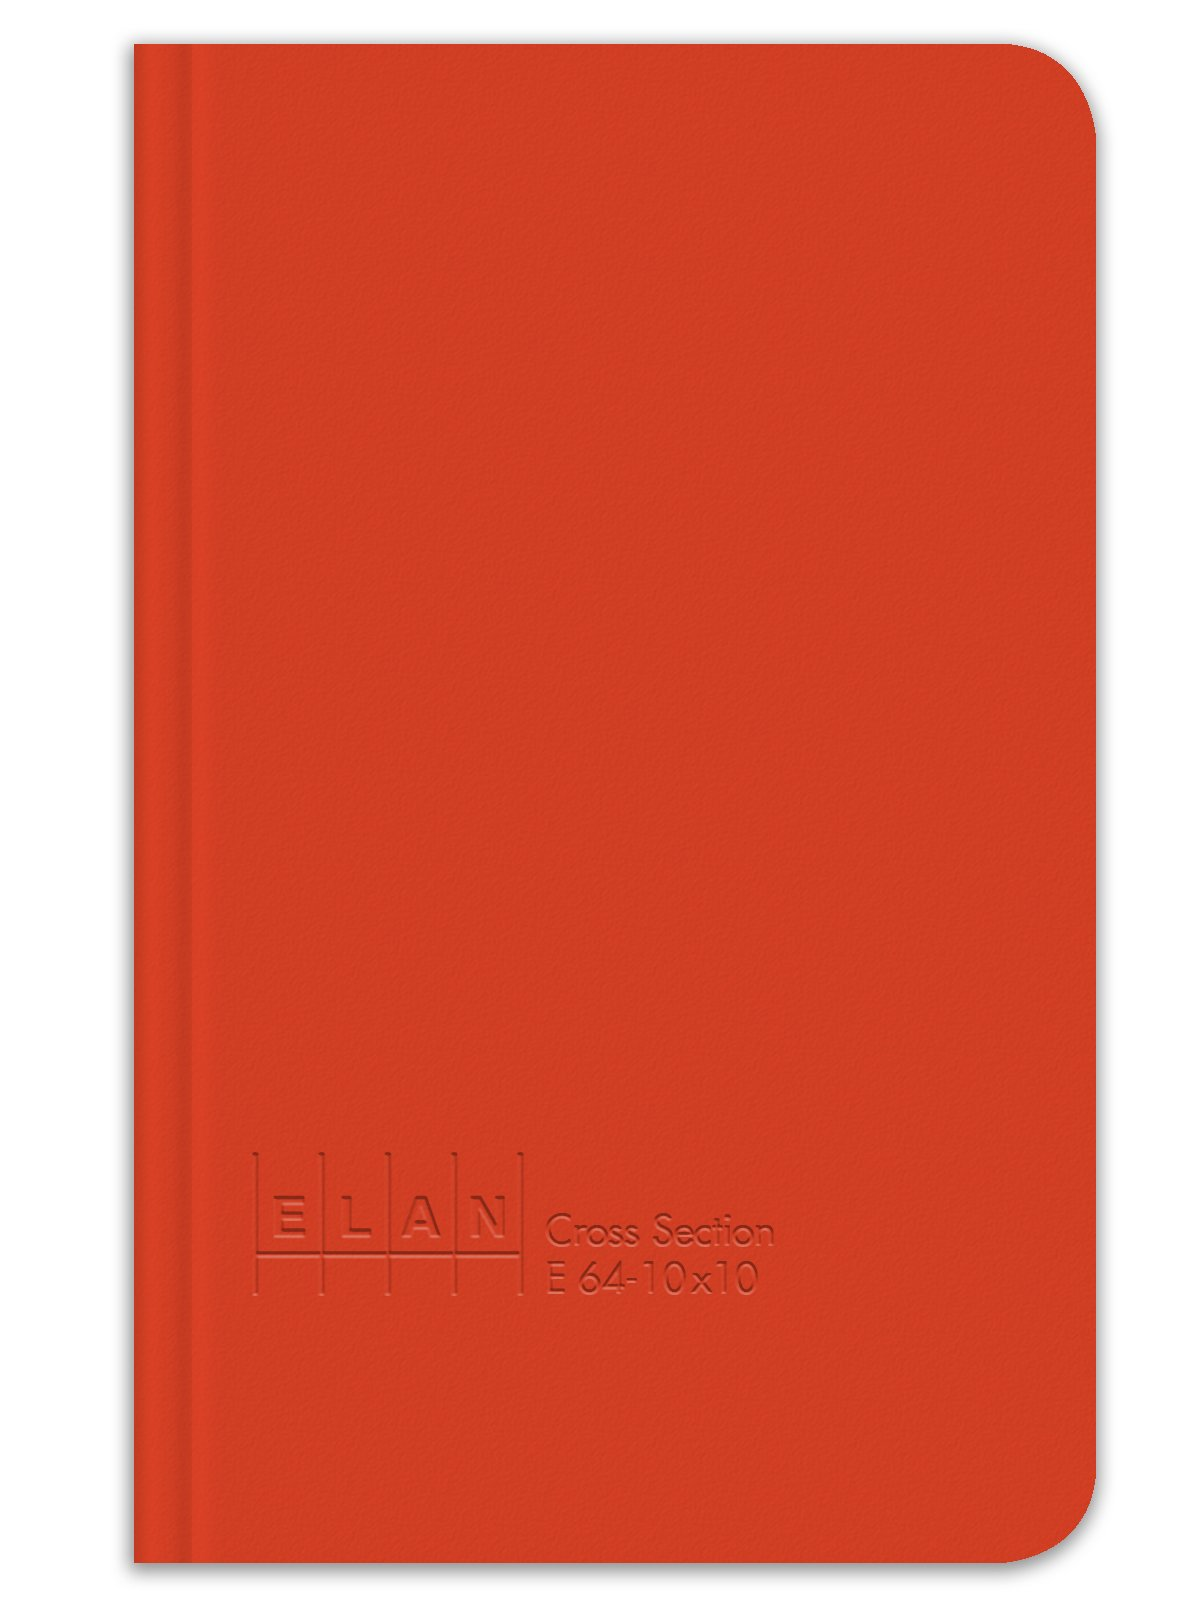 Elan Publishing Company E64-10x10 Cross Section Book 4 ⅝ x 7 ¼, Bright Orange Cover (Pack of 24)